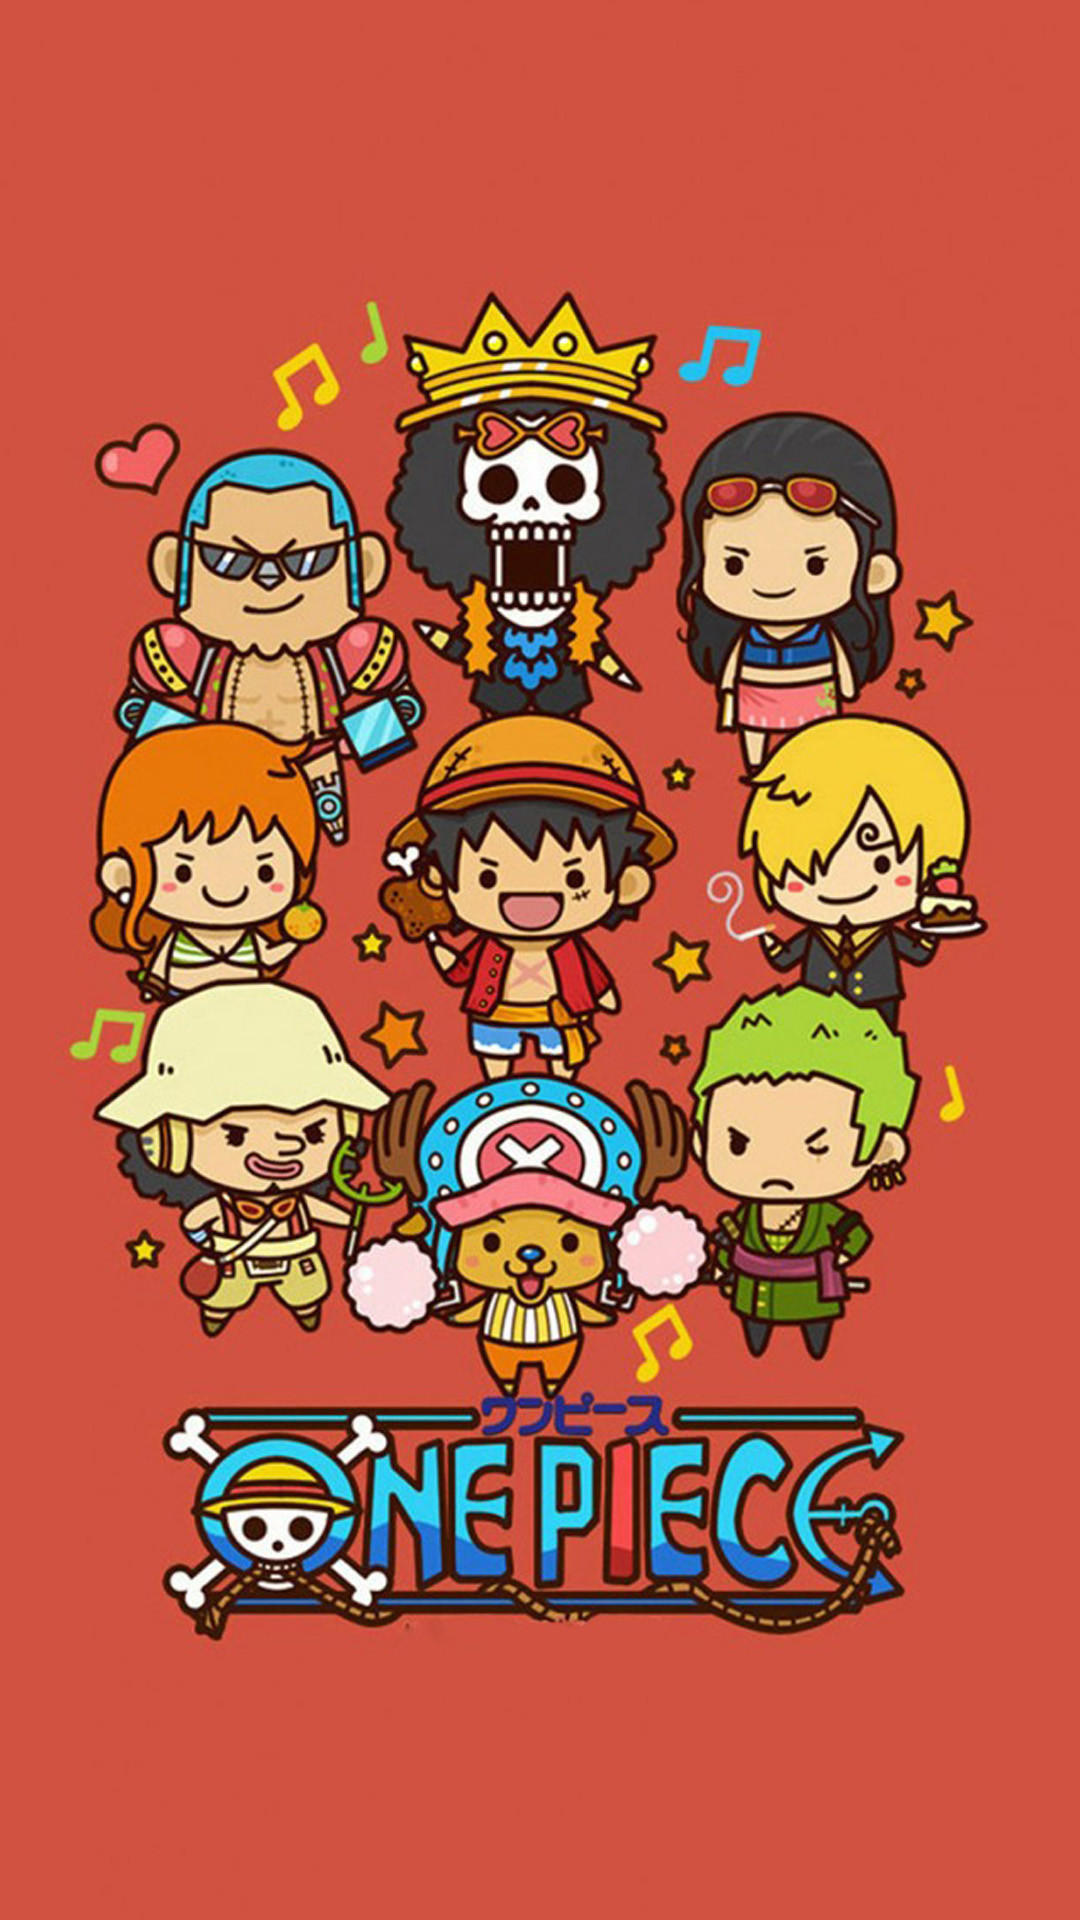 Cute Lovely One Piece Cartoon Poster Iphone 6 Wallpaper One Piece Wallpaper 4k Phone 1080x1920 Download Hd Wallpaper Wallpapertip